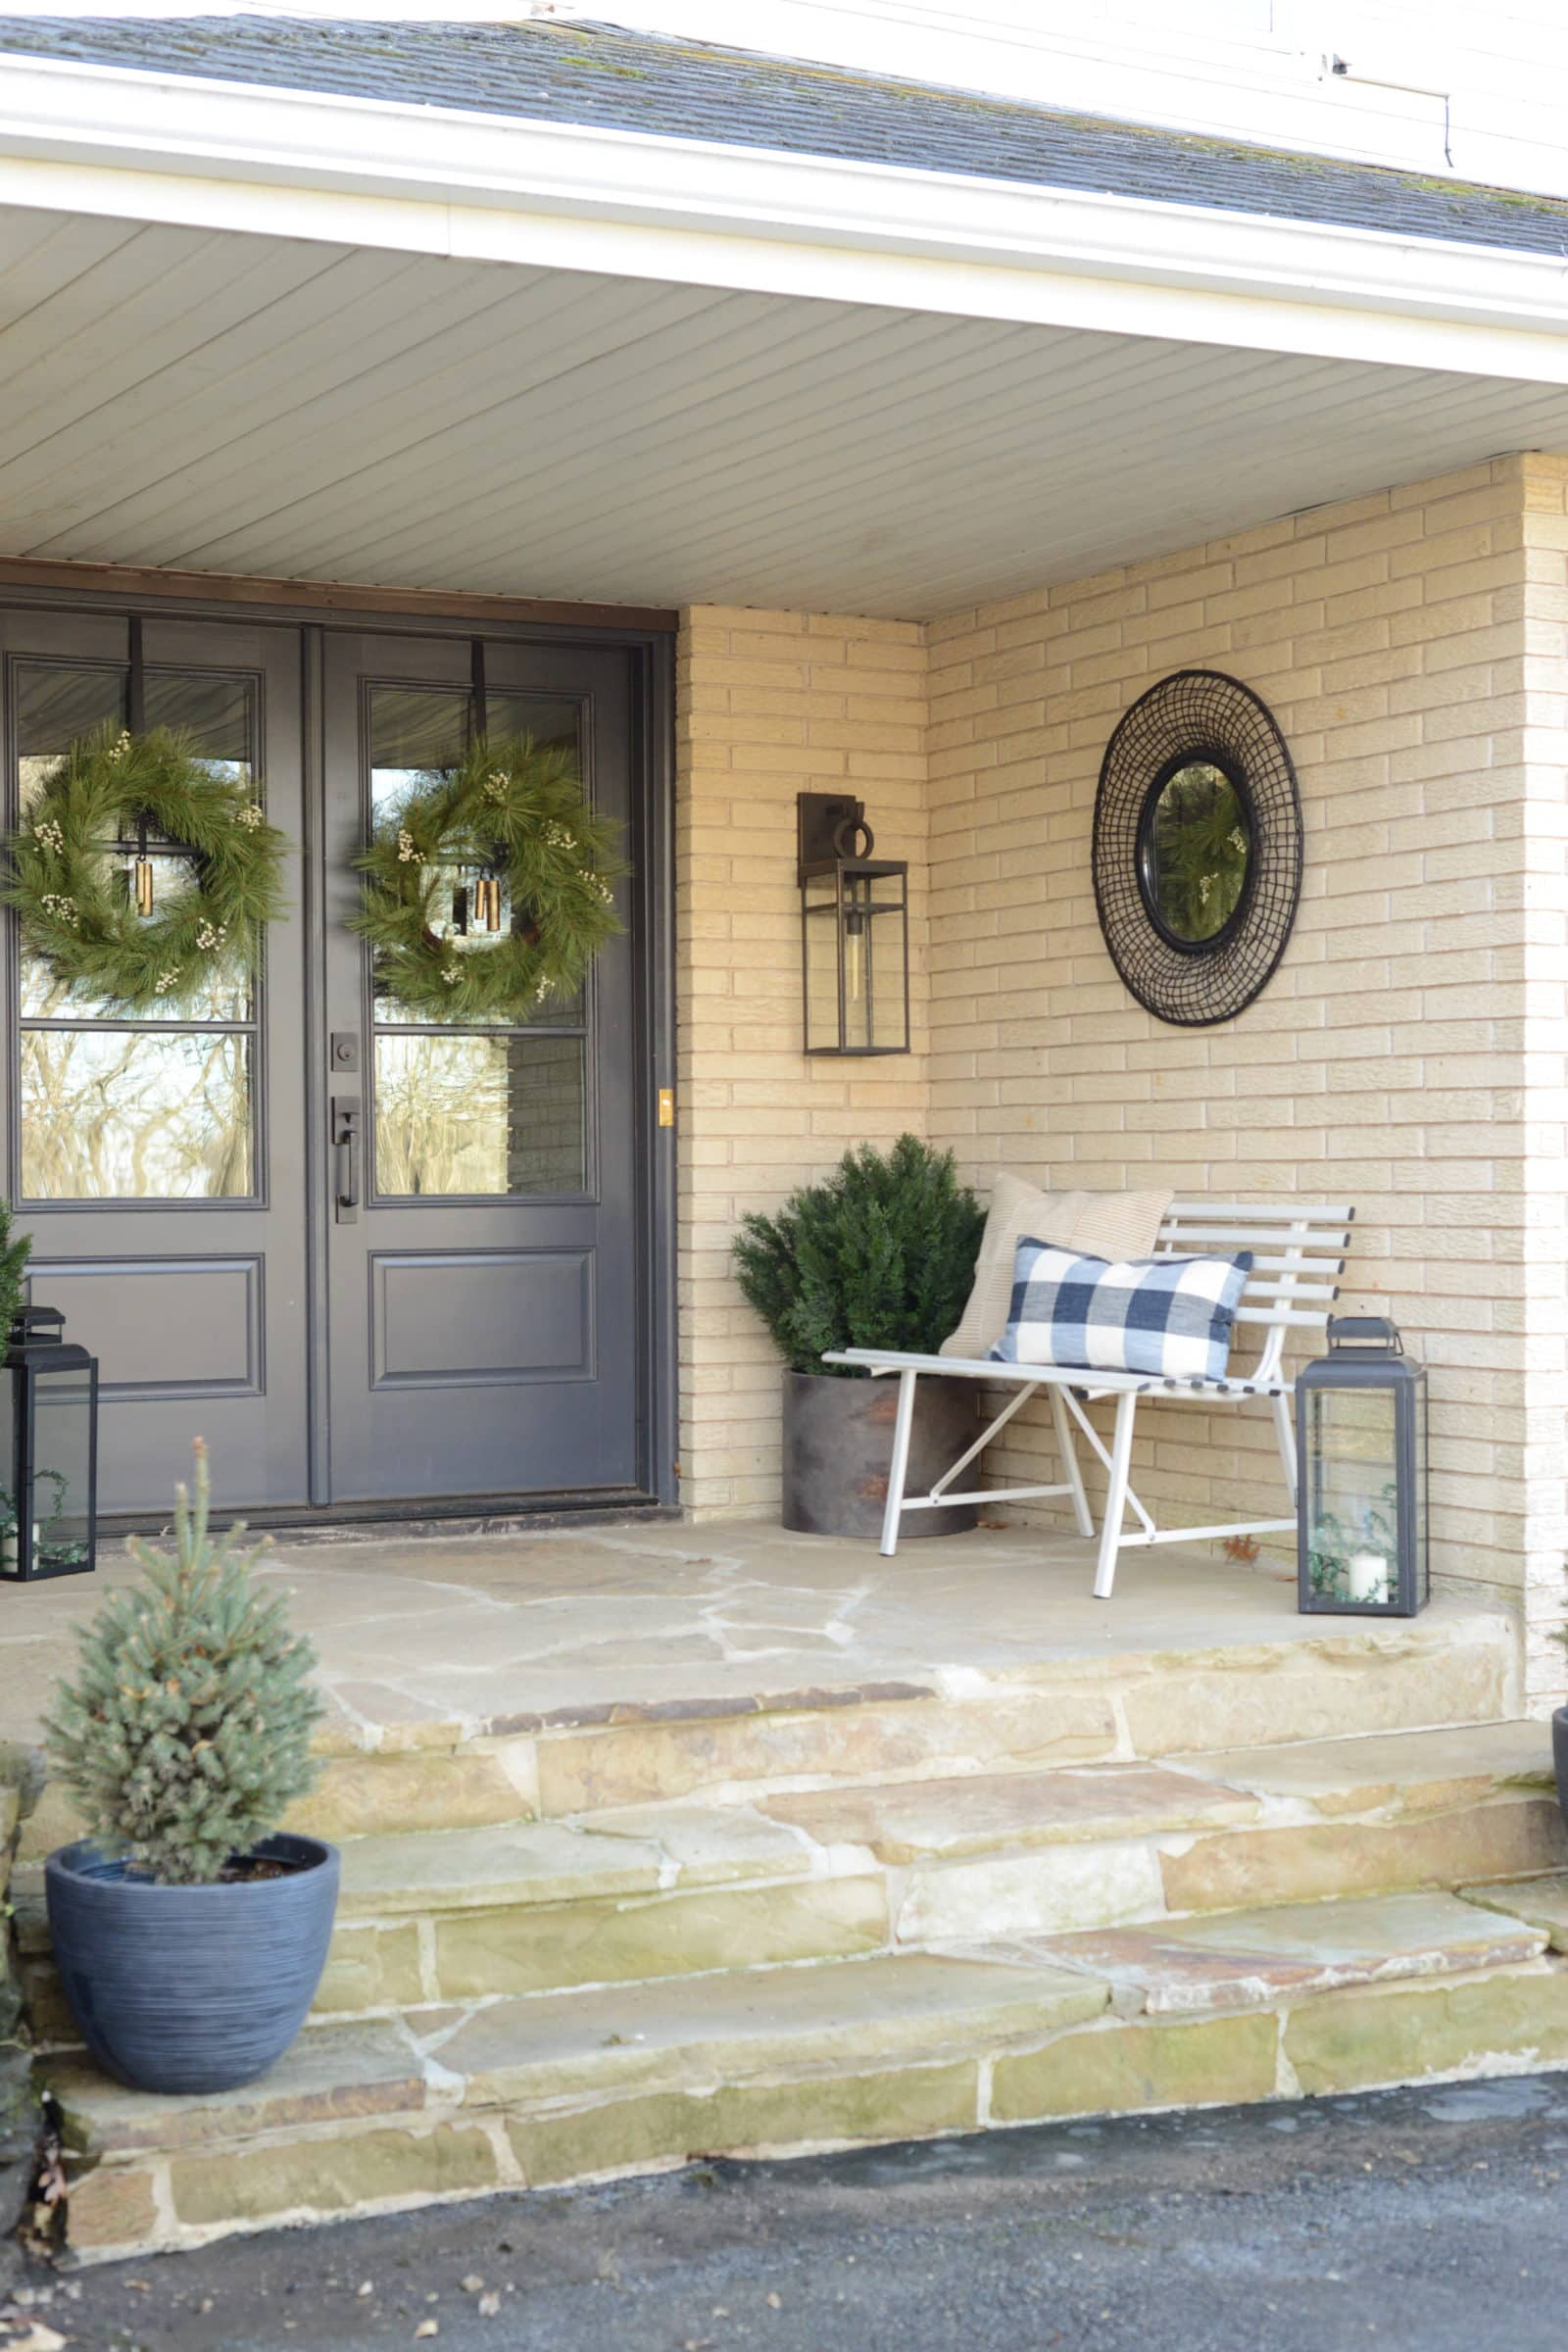 Double front doors on the front porch with white bench styled for winter.